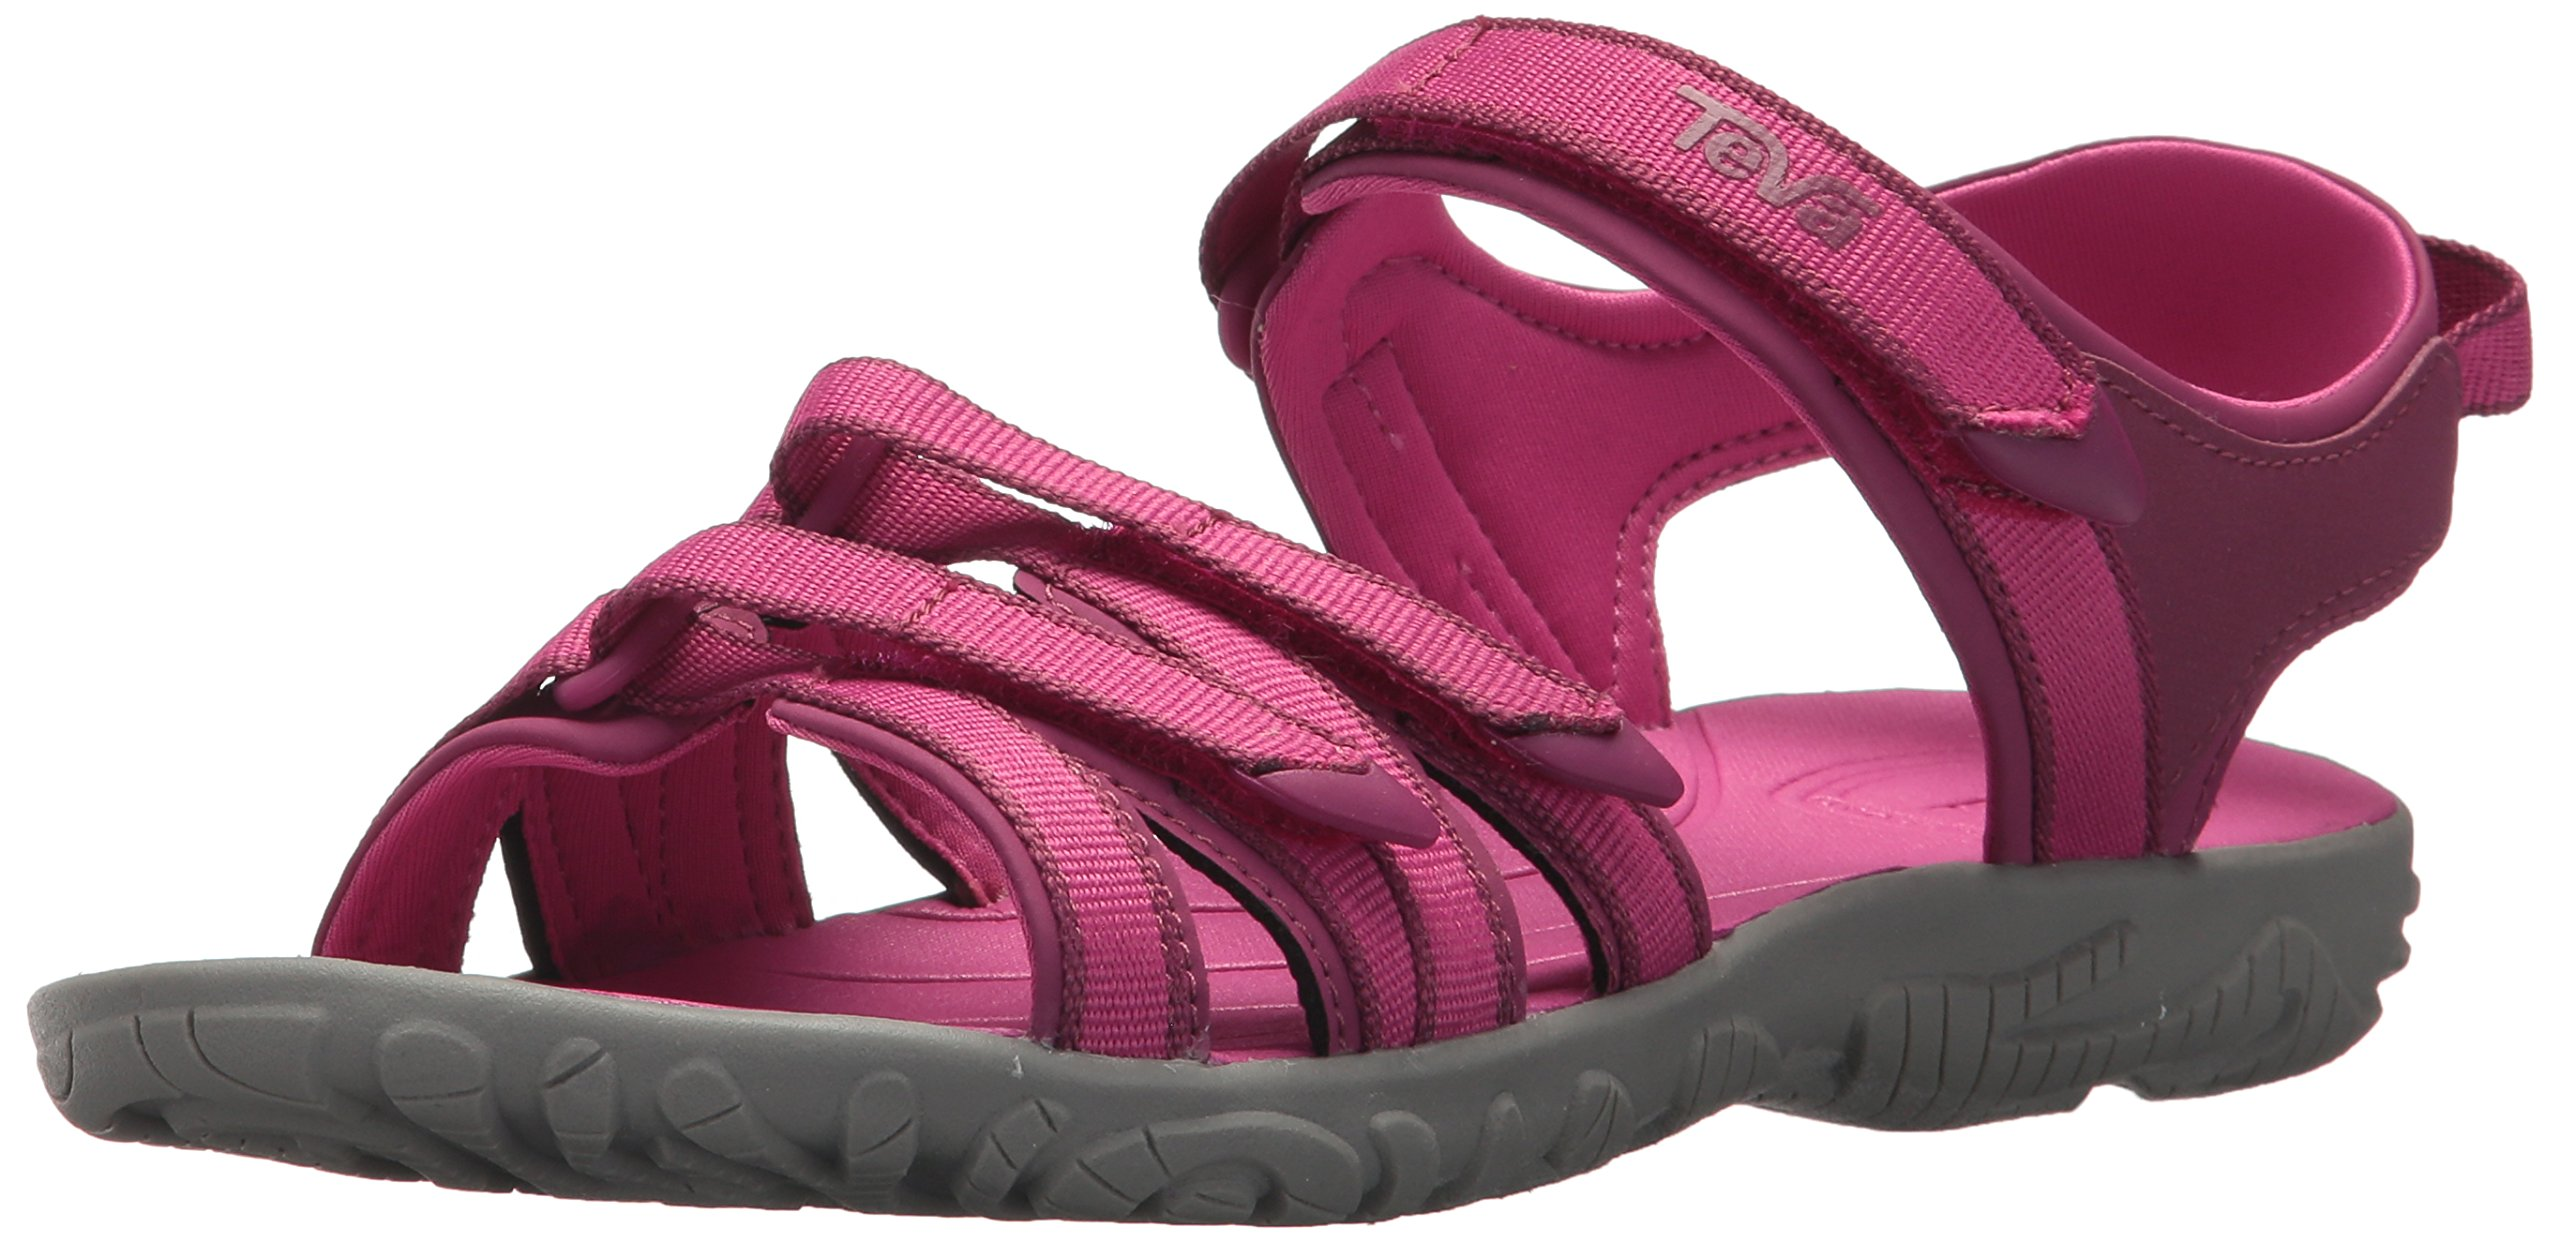 Teva Girls' Y Tirra Sport Sandal, Raspberry Rose, 7 M US Big Kid